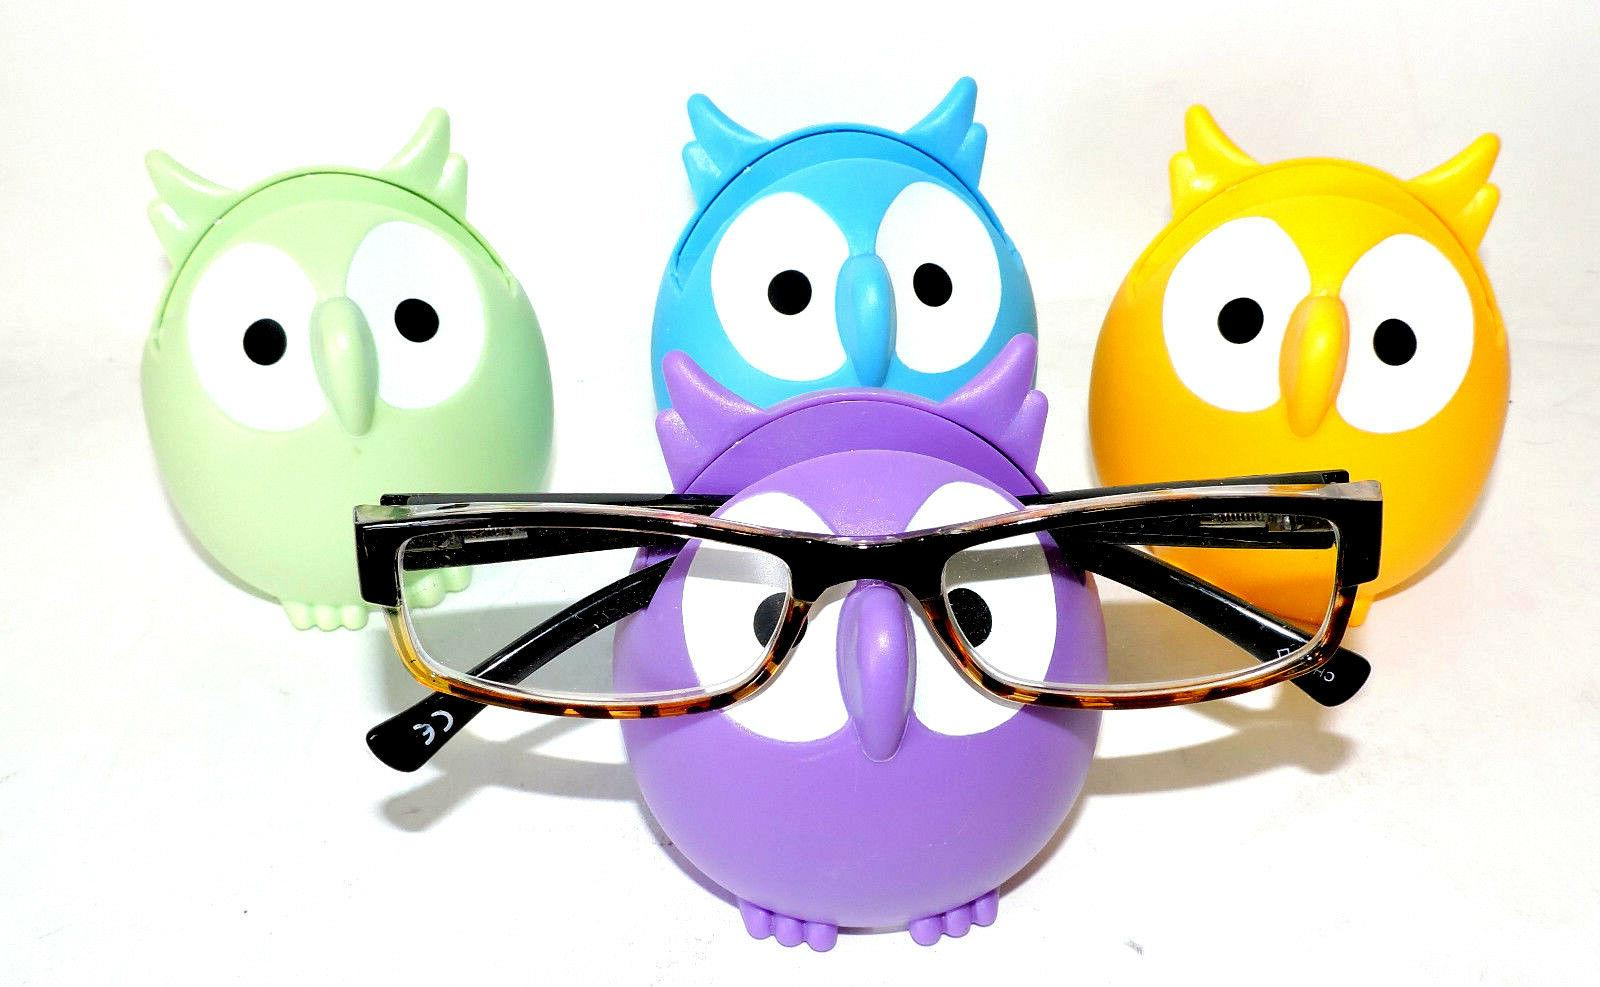 Owl Glasses Sunglasses Eyeglass Holder Stand Display Rack Smartphone Holder